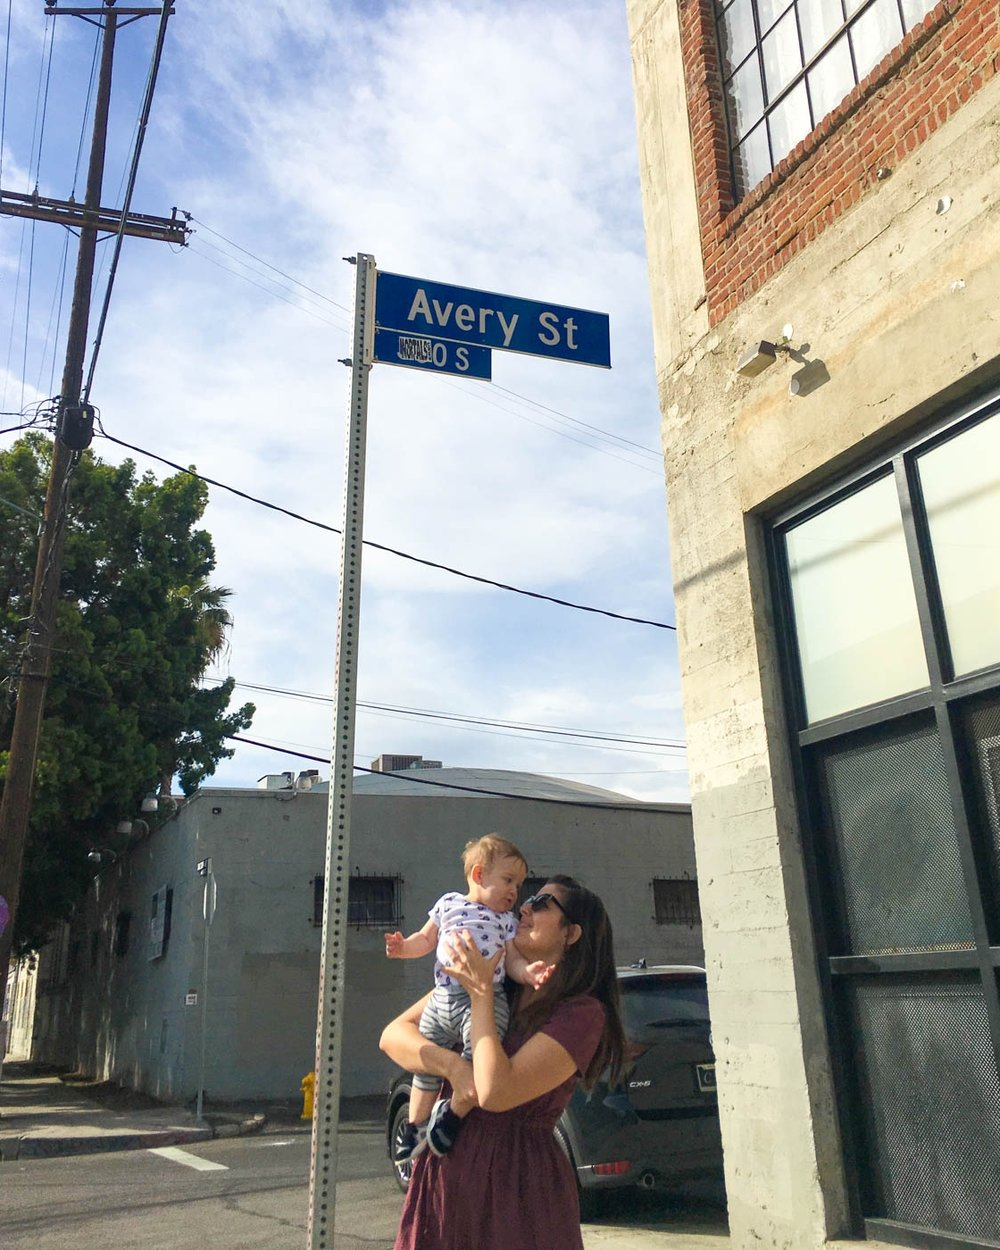 Avery St. Downtown LA